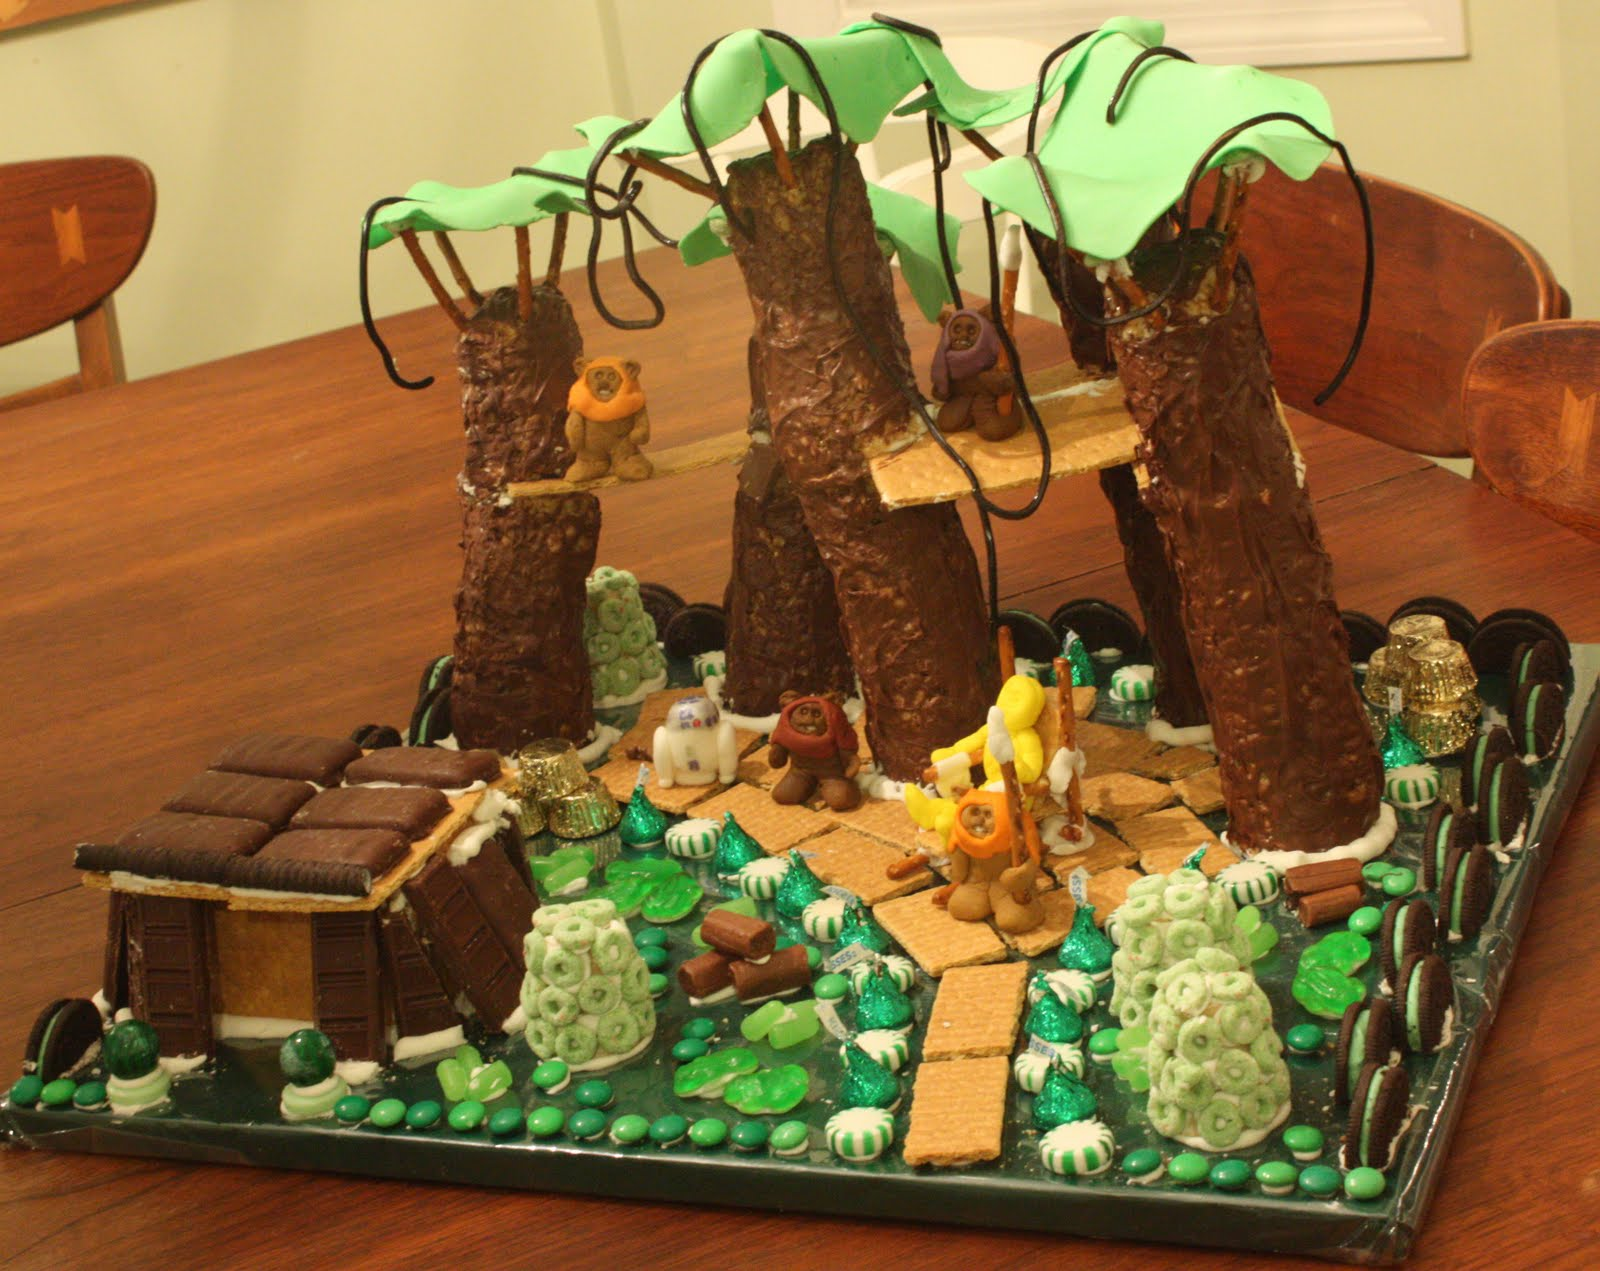 smart mama: Gingerbread Star Wars Ewok Village